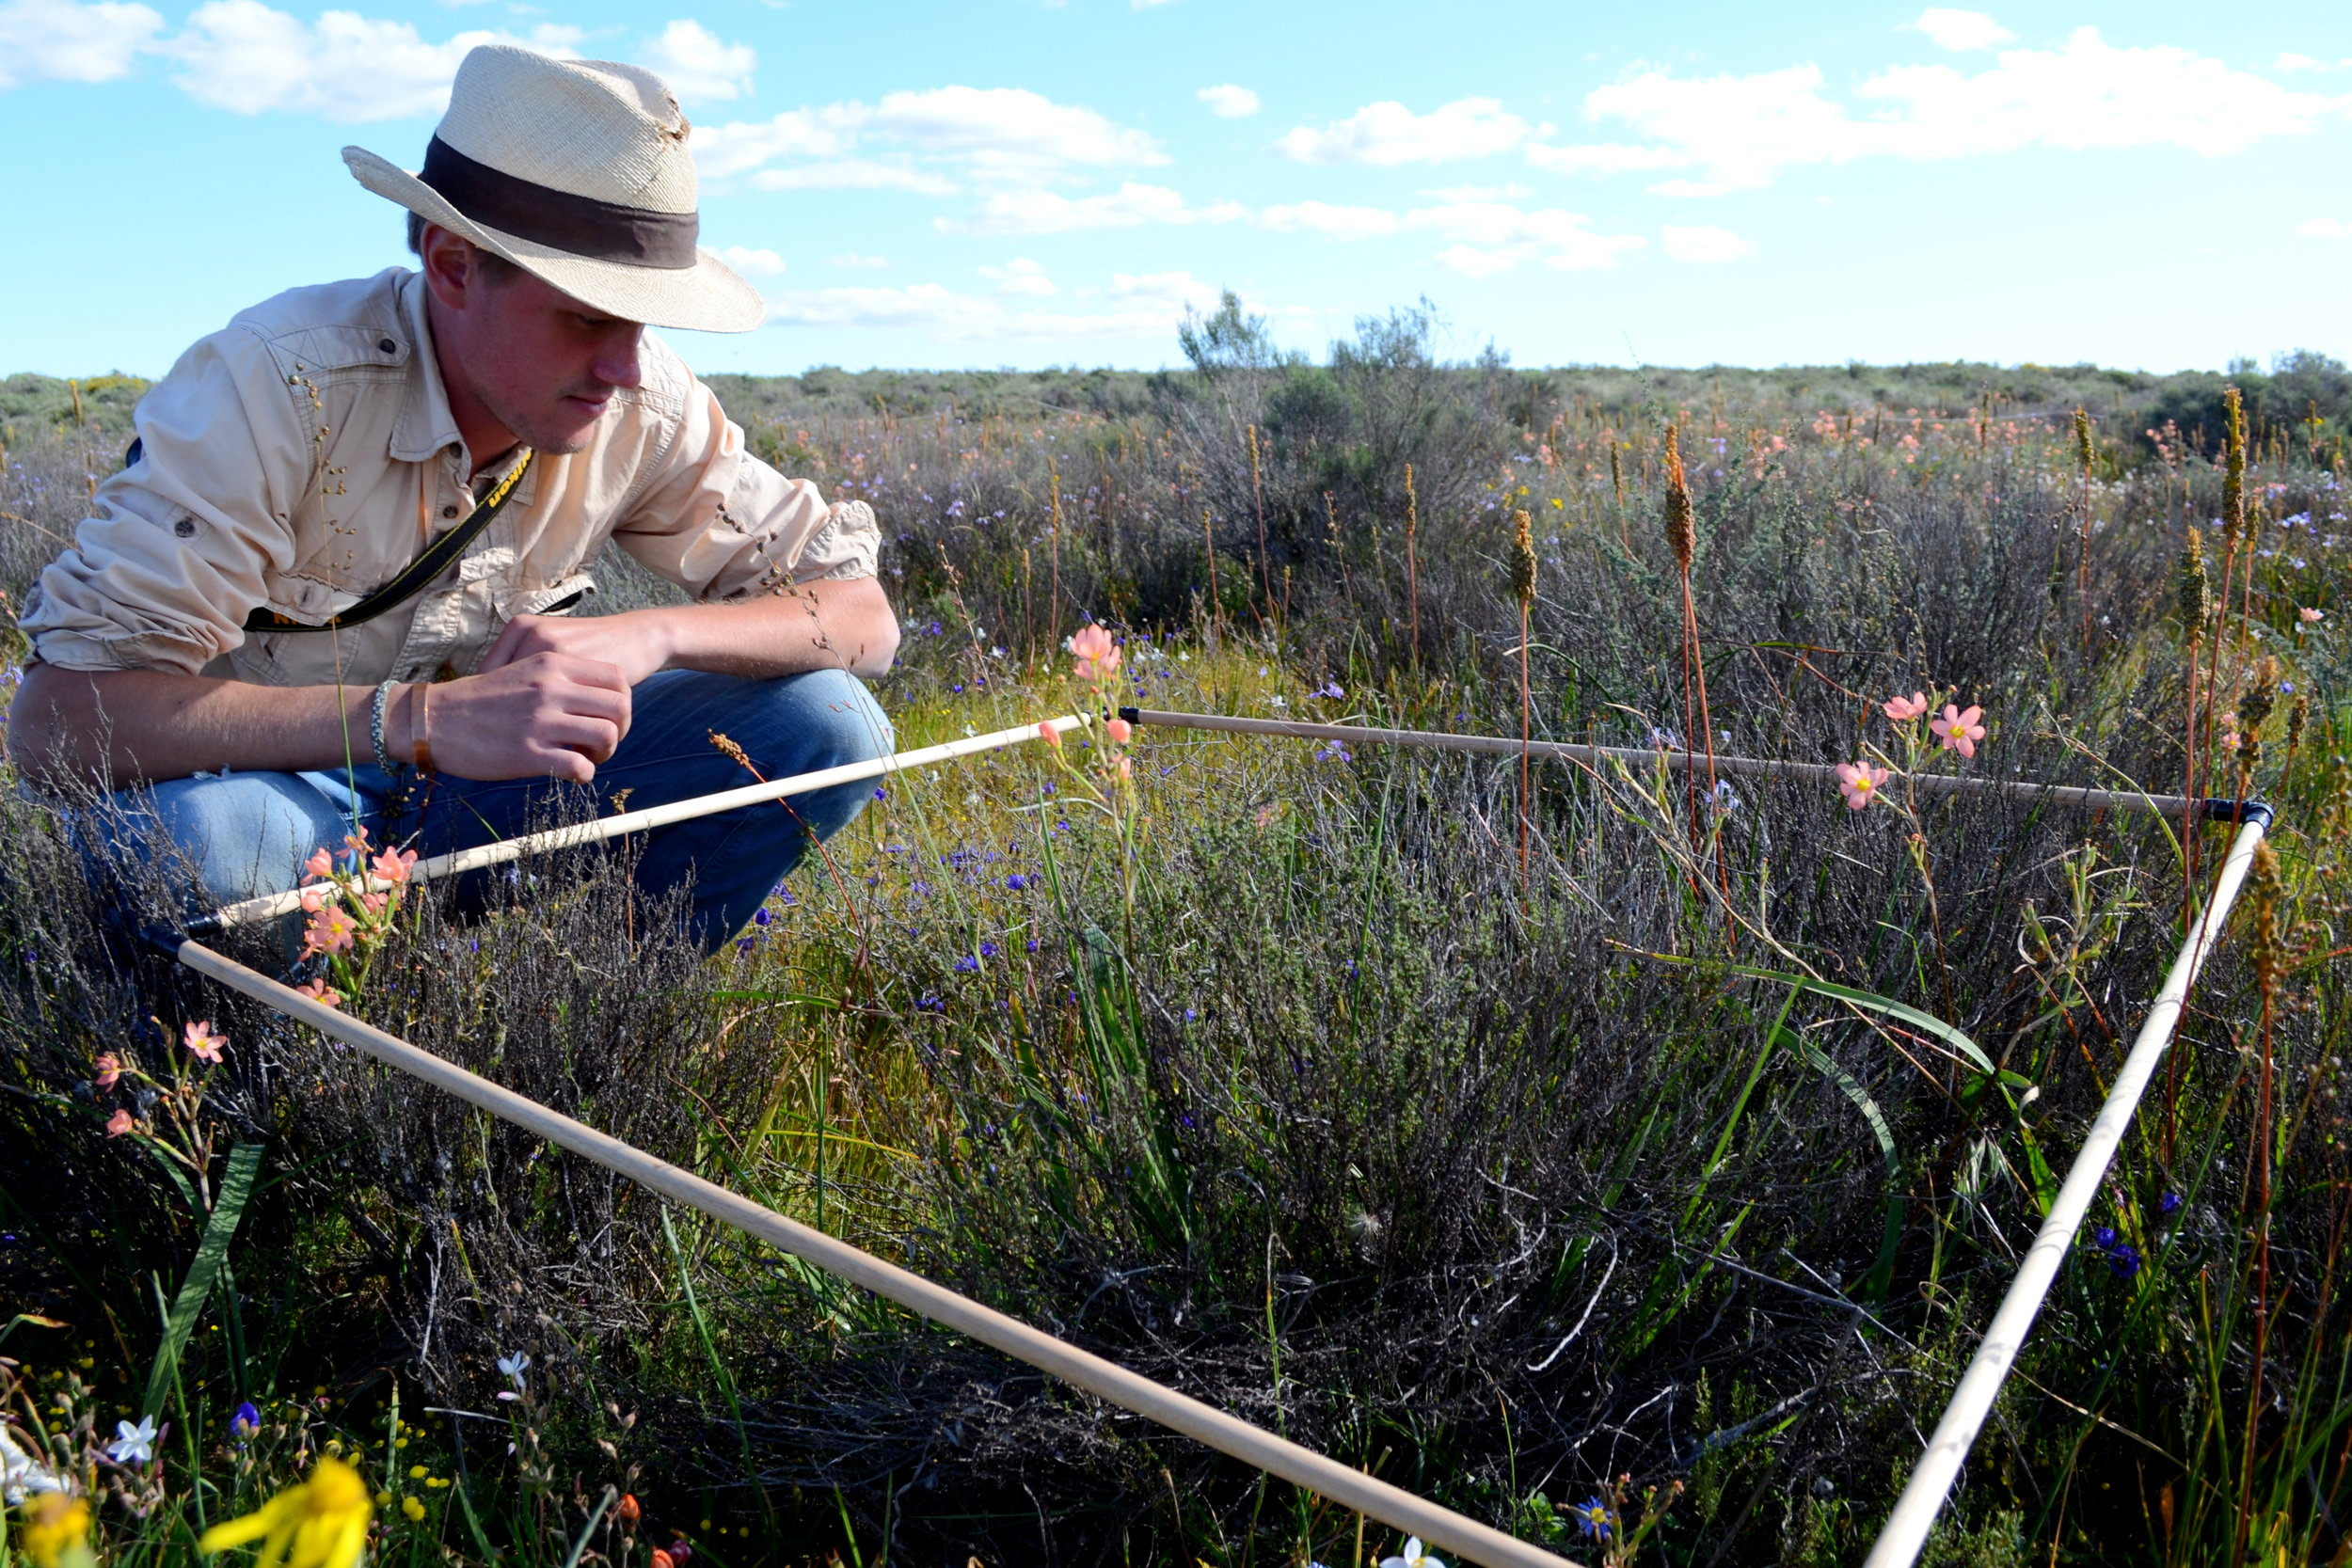 Evan Eifler   Spatial and temporal patterns of diversification in  Geissorhiza  (Iridaceae): Phylogeny, biogeography, and vulnerability in the Cape Floristic Province